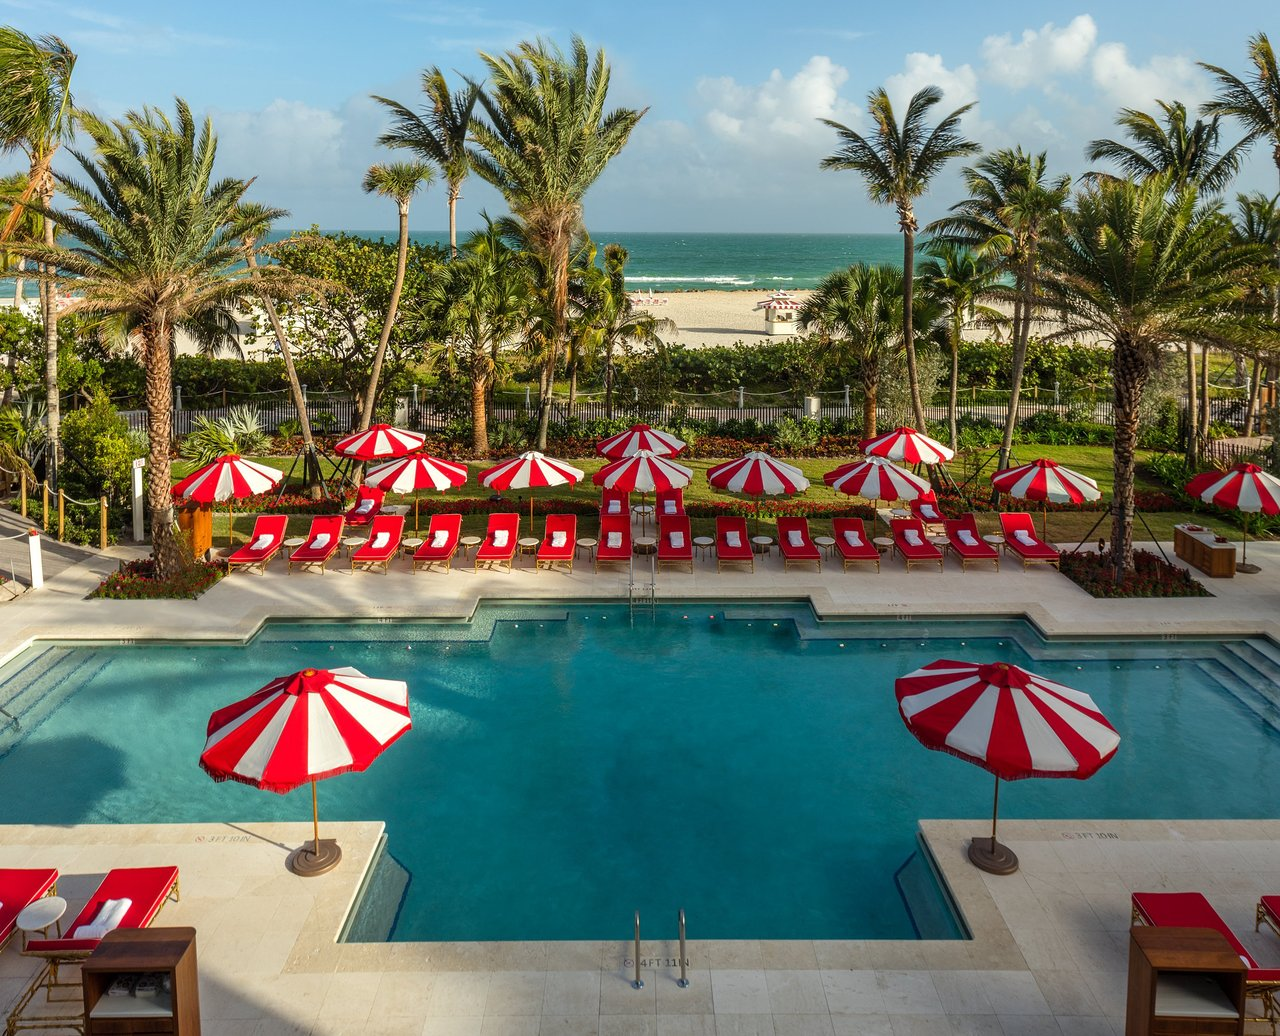 Hotel pool with red chaise lounge and red & white candy-cane striped umbrellas all around it.